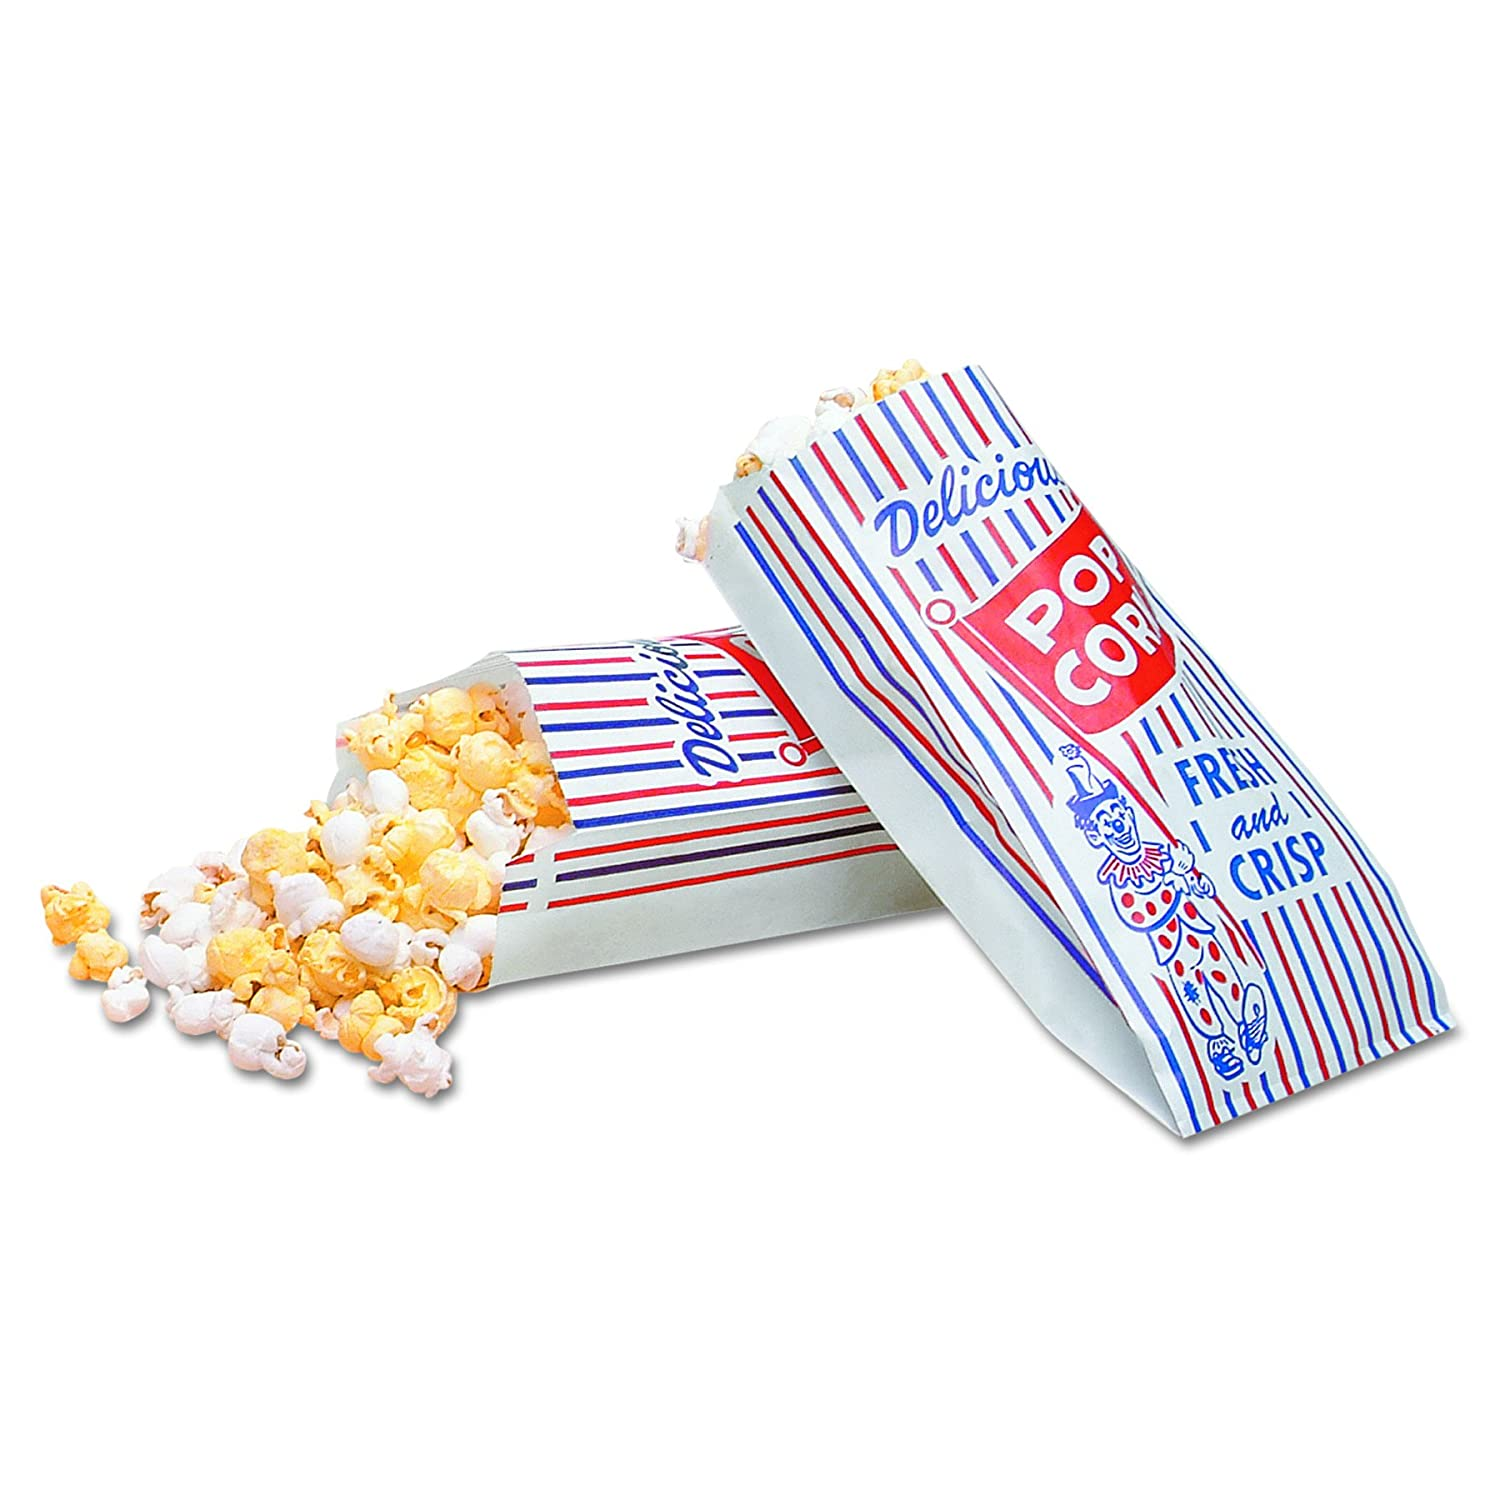 Bagcraft 300471 Pinch-Bottom Paper Popcorn Bag 8